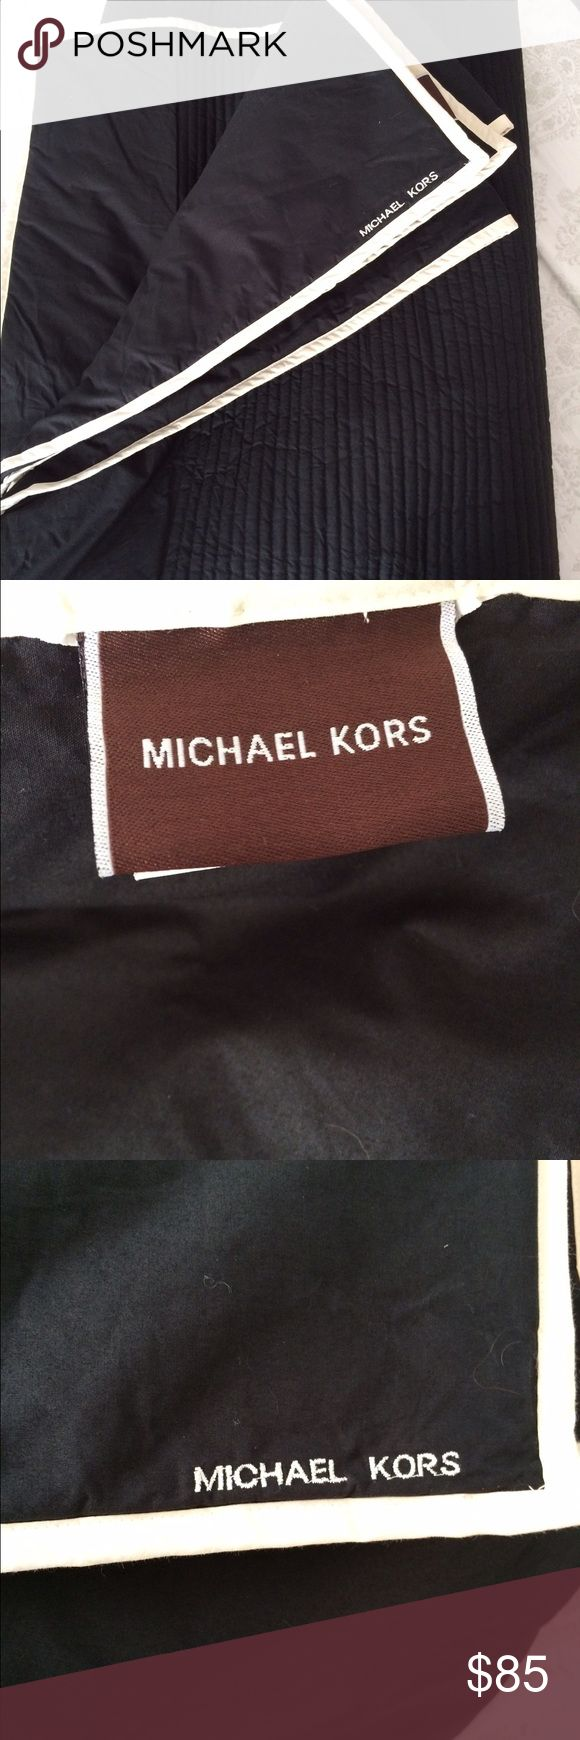 Michael Kors King Size Coverlet - NWOT! Michael Kors  King Size Coverlet Blanket New without tags - never used! Black with beige trim  Retail $250 Michael Kors Other